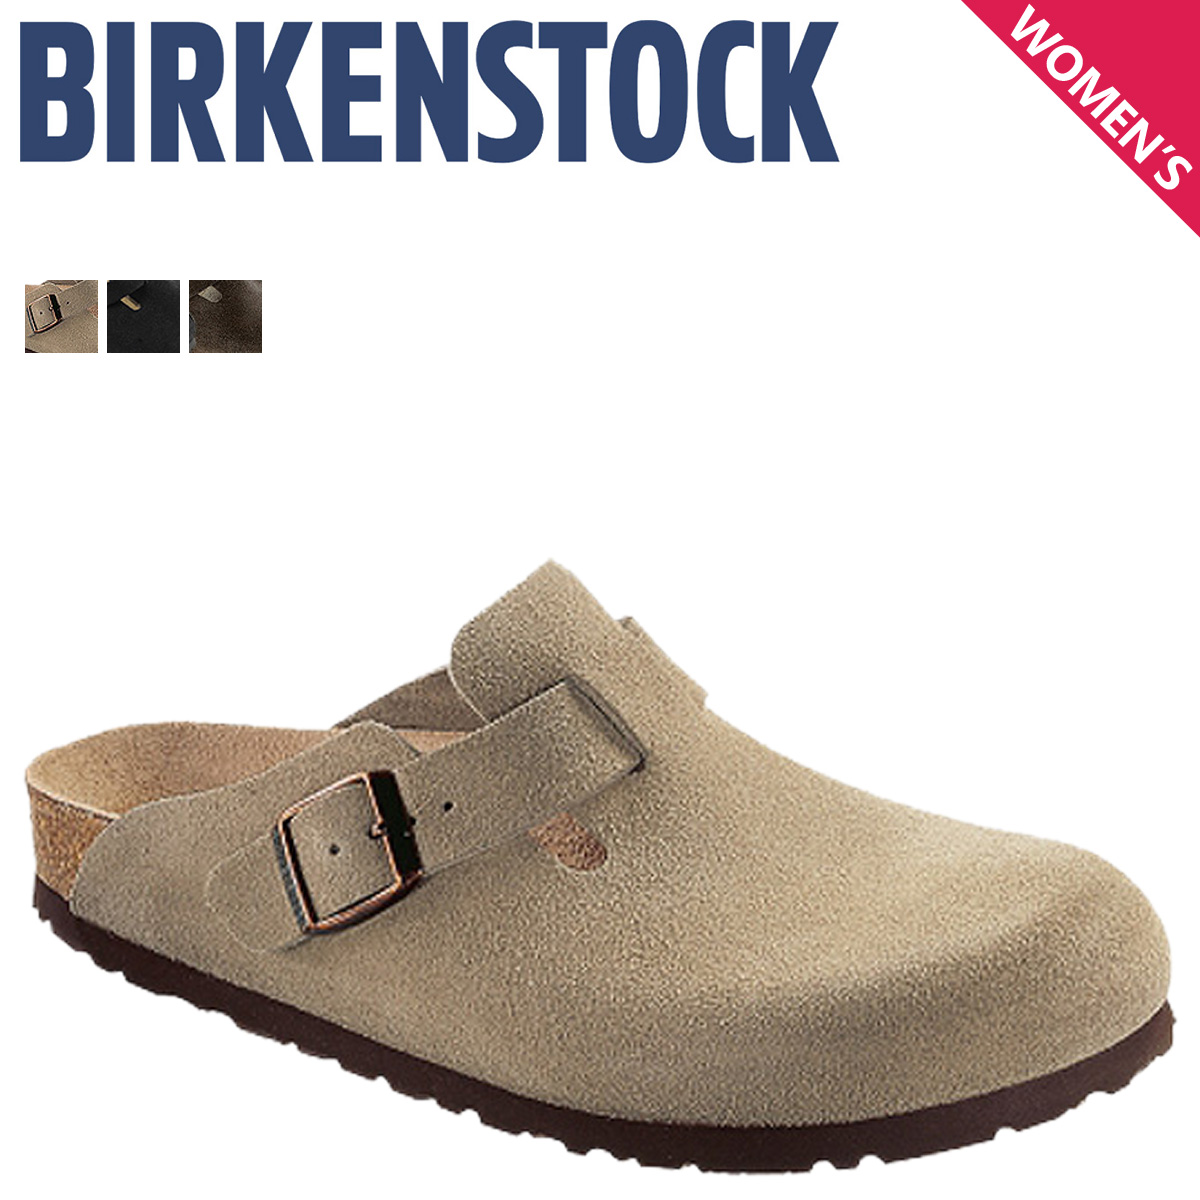 471372dc618 BIRKENSTOCK Birkenstock Boston women s Bilkent Sandals narrow width BOSTON